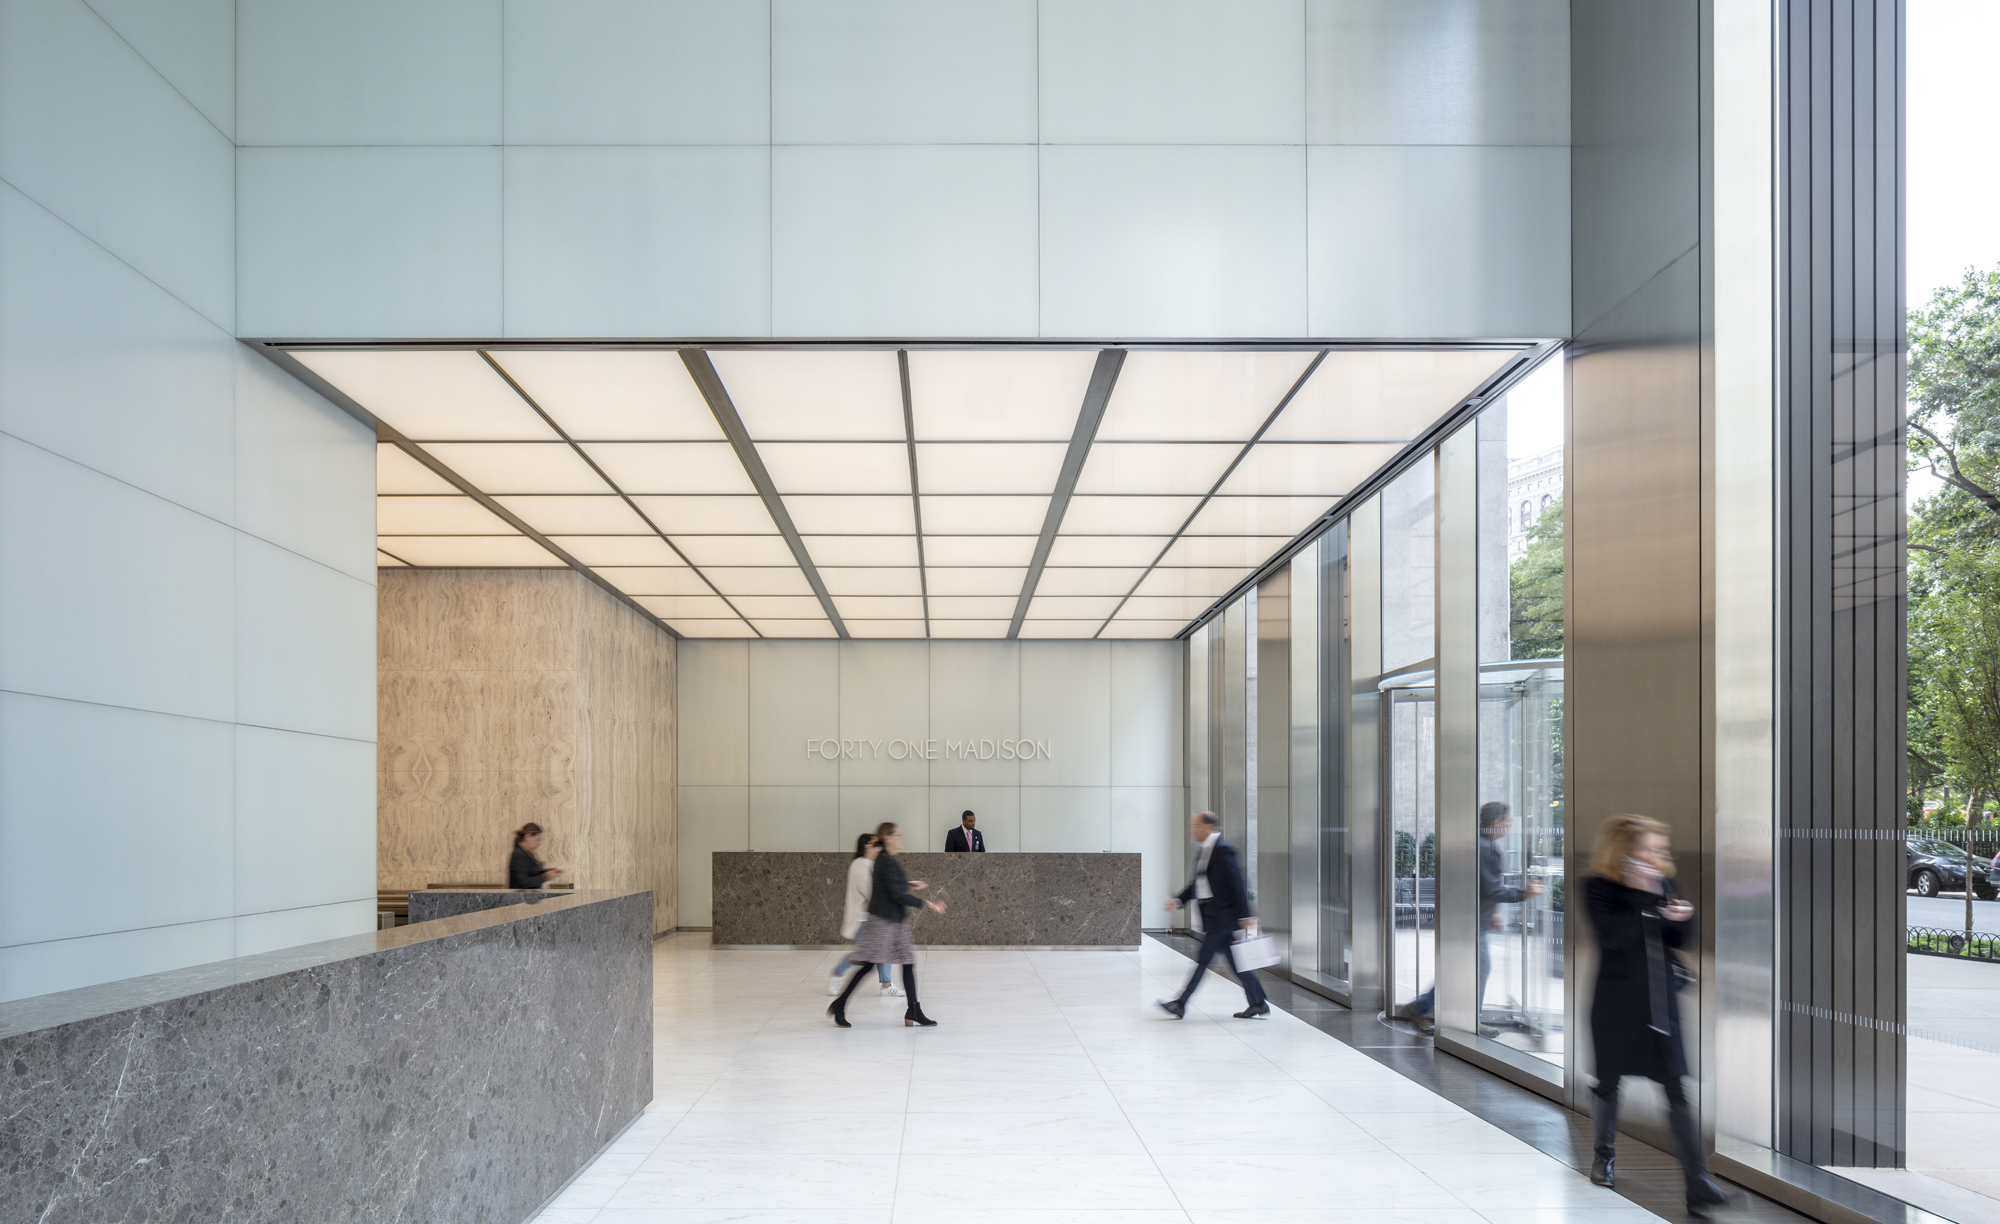 41 Madison   Skidmore, Owings & Merrill